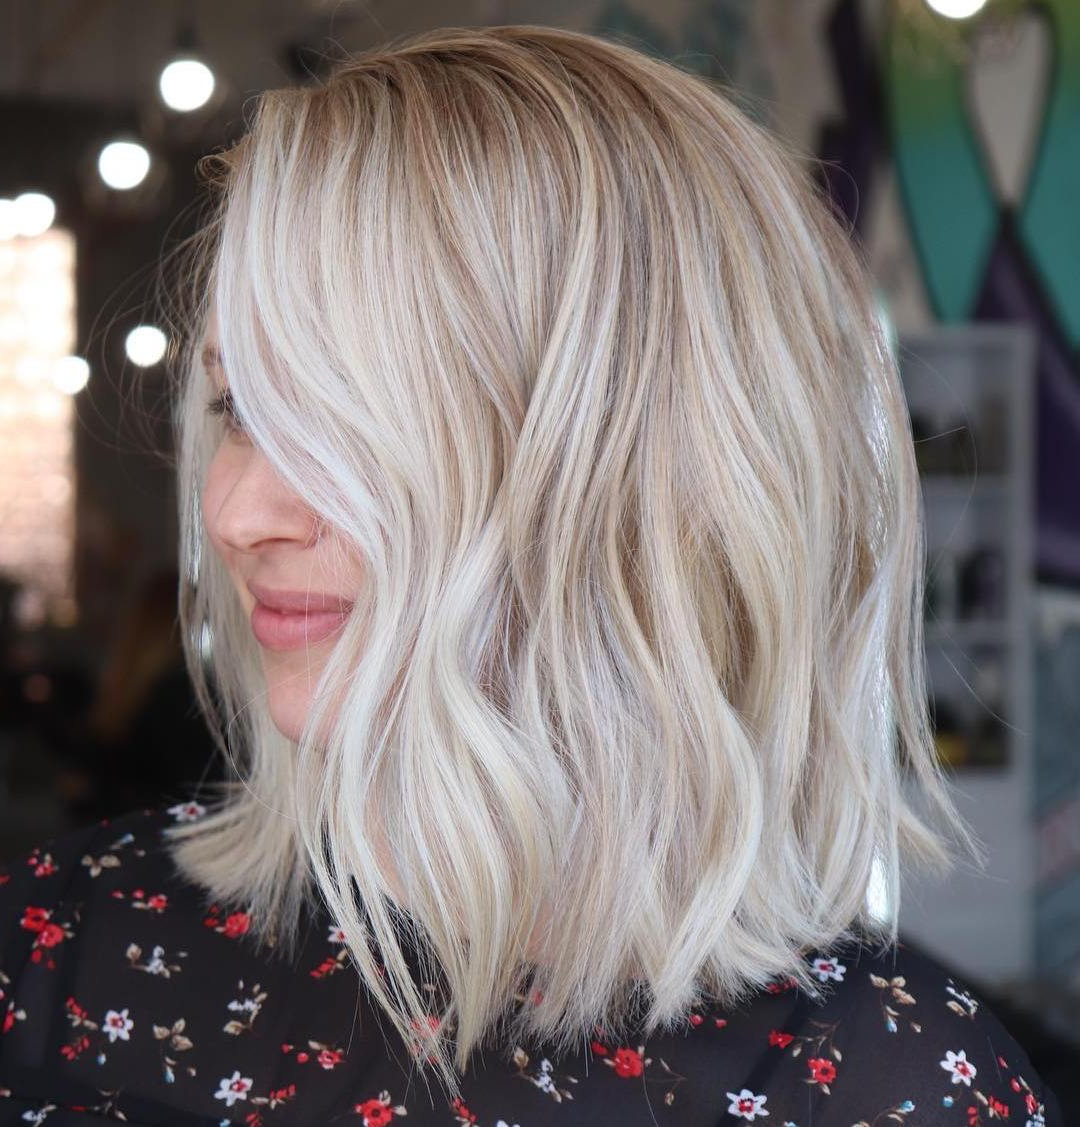 Find Your Best Bob Haircut For 2019 Within Feminine Wavy Golden Blonde Bob Hairstyles (View 16 of 20)